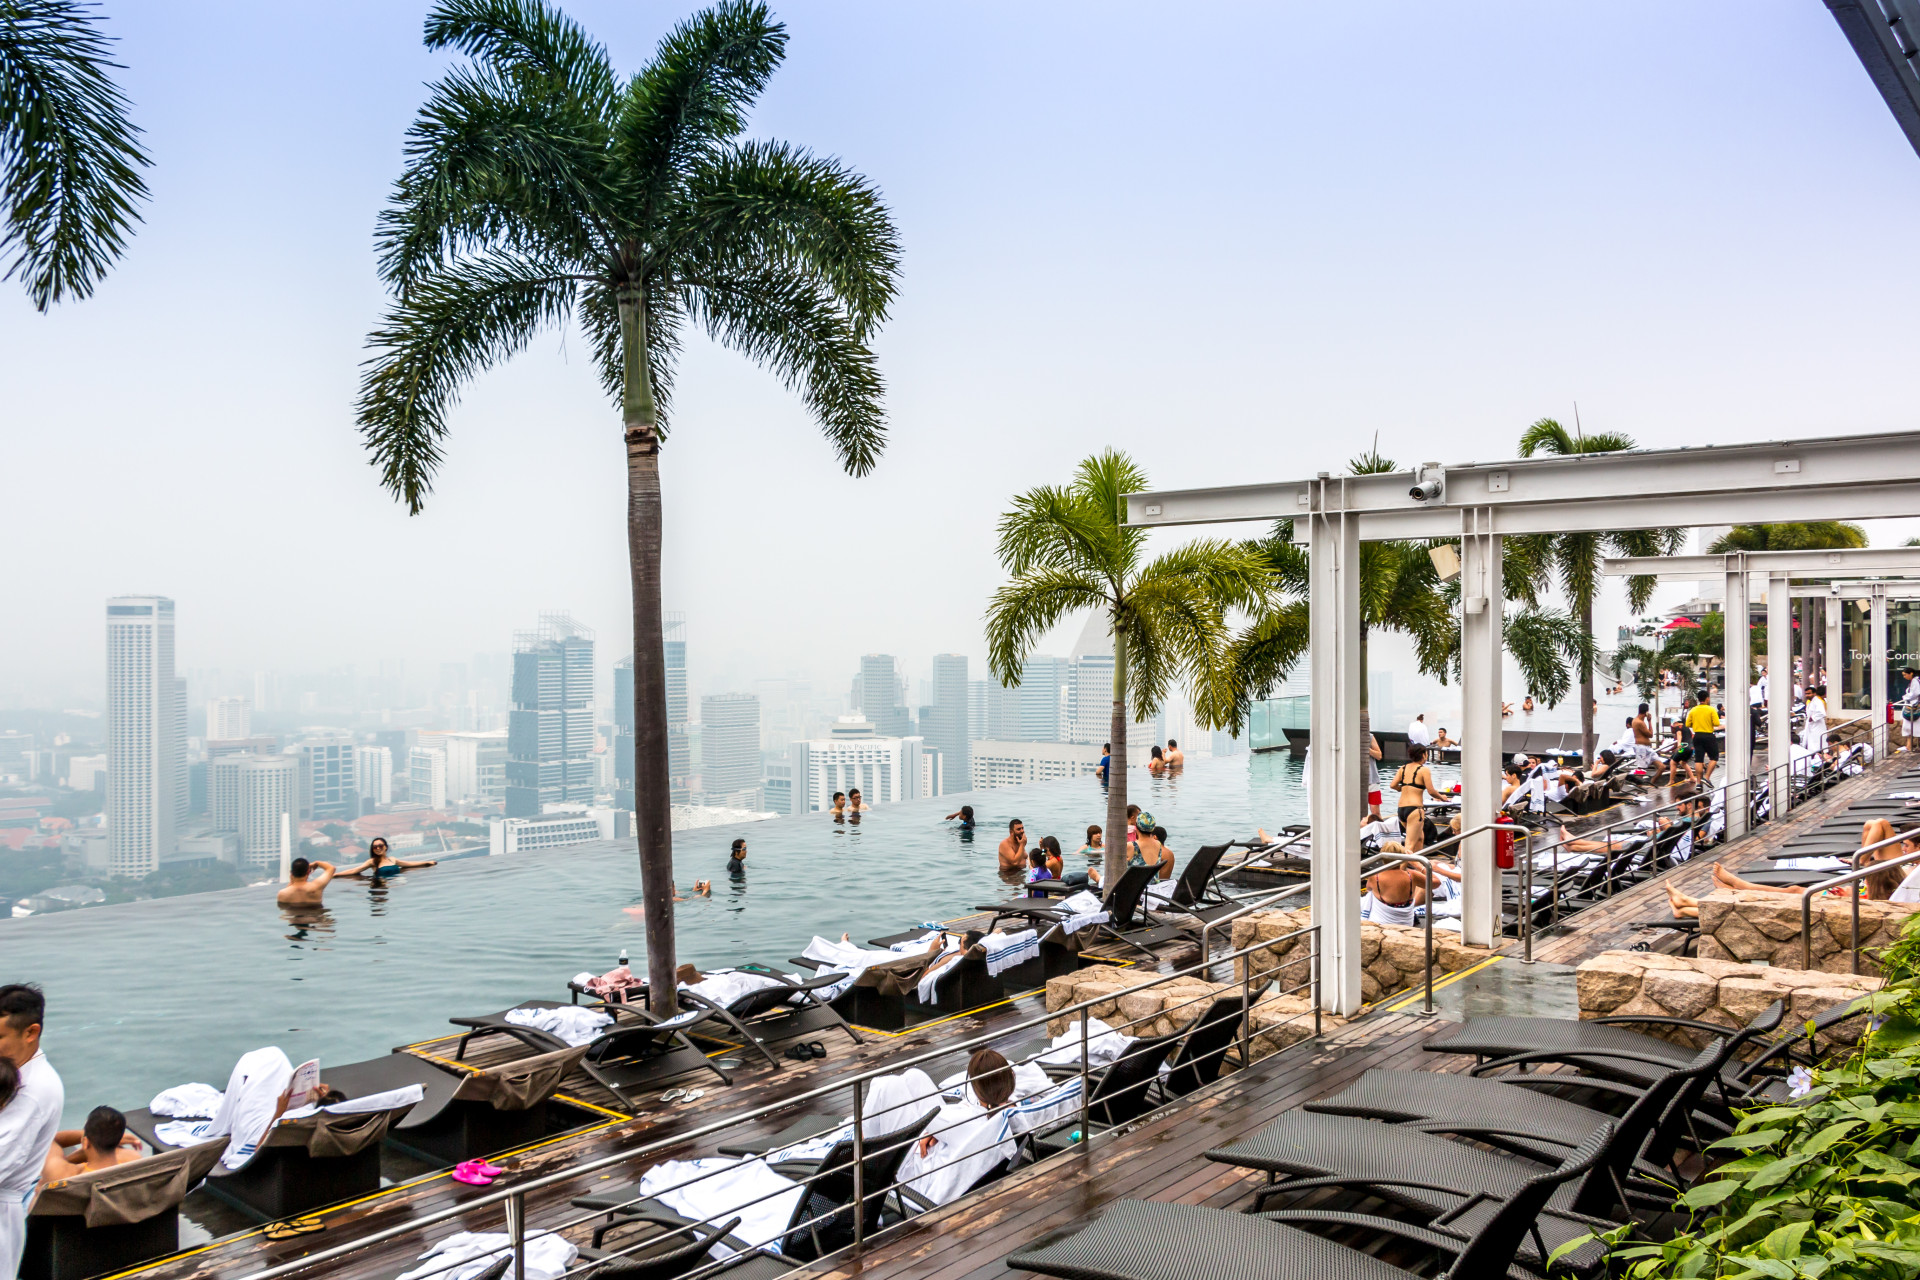 "<i class=""fa fa-film""></i>– La piscine du Marina Bay Sands"